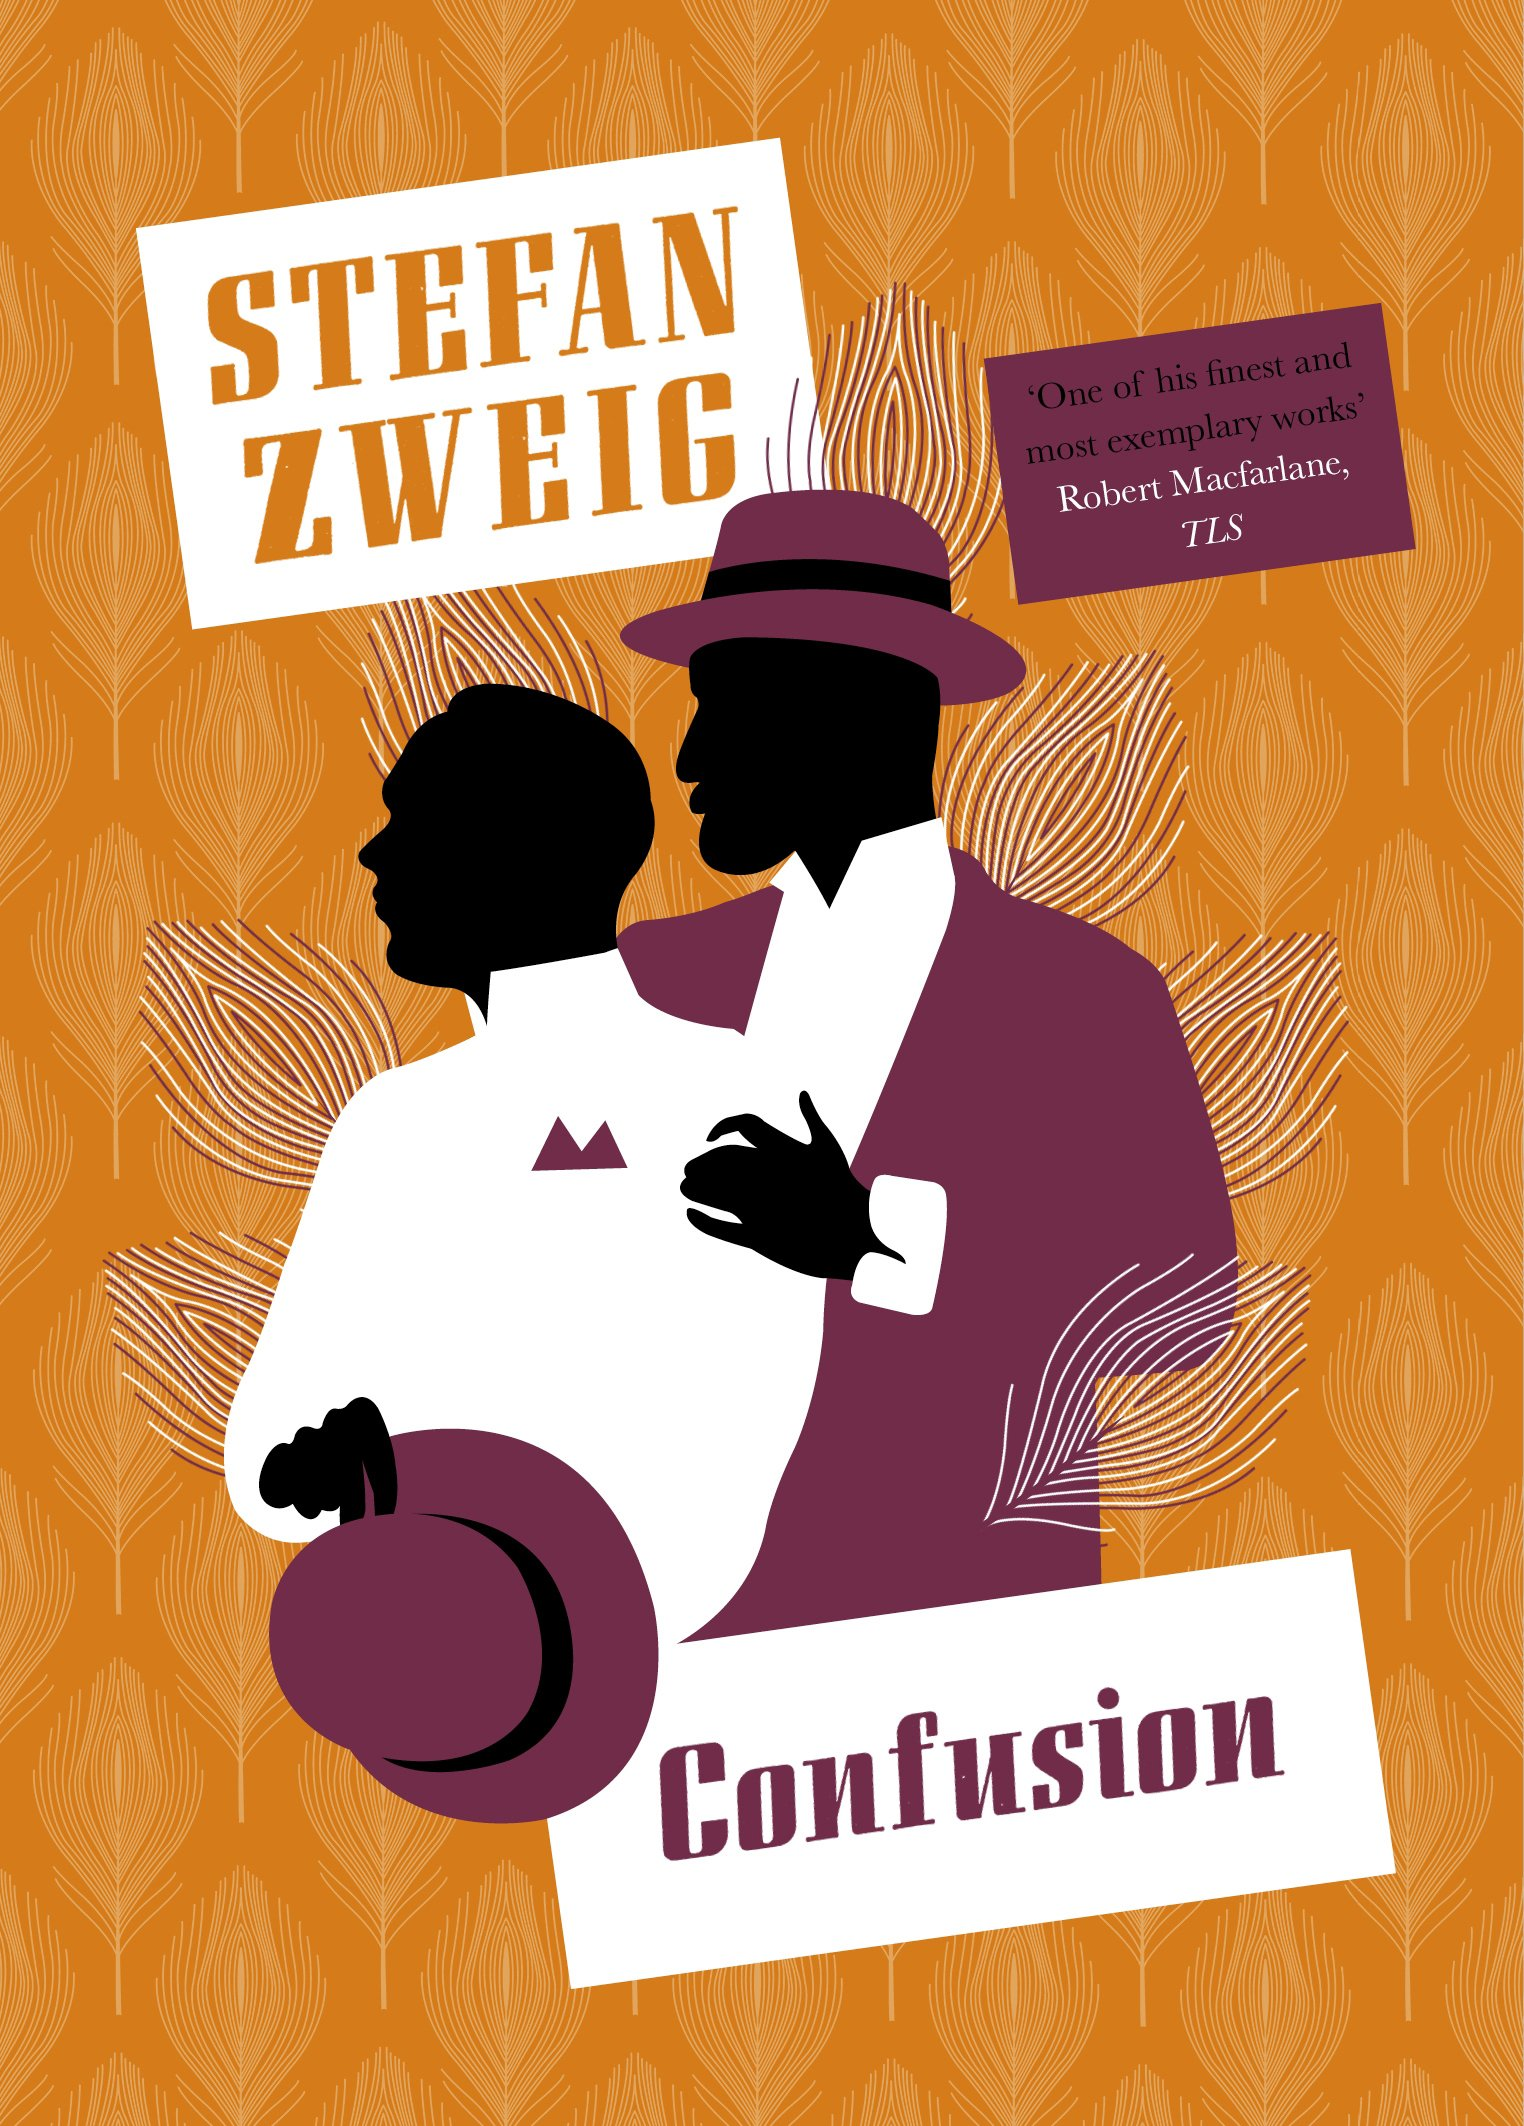 Zweig Confusion cover art